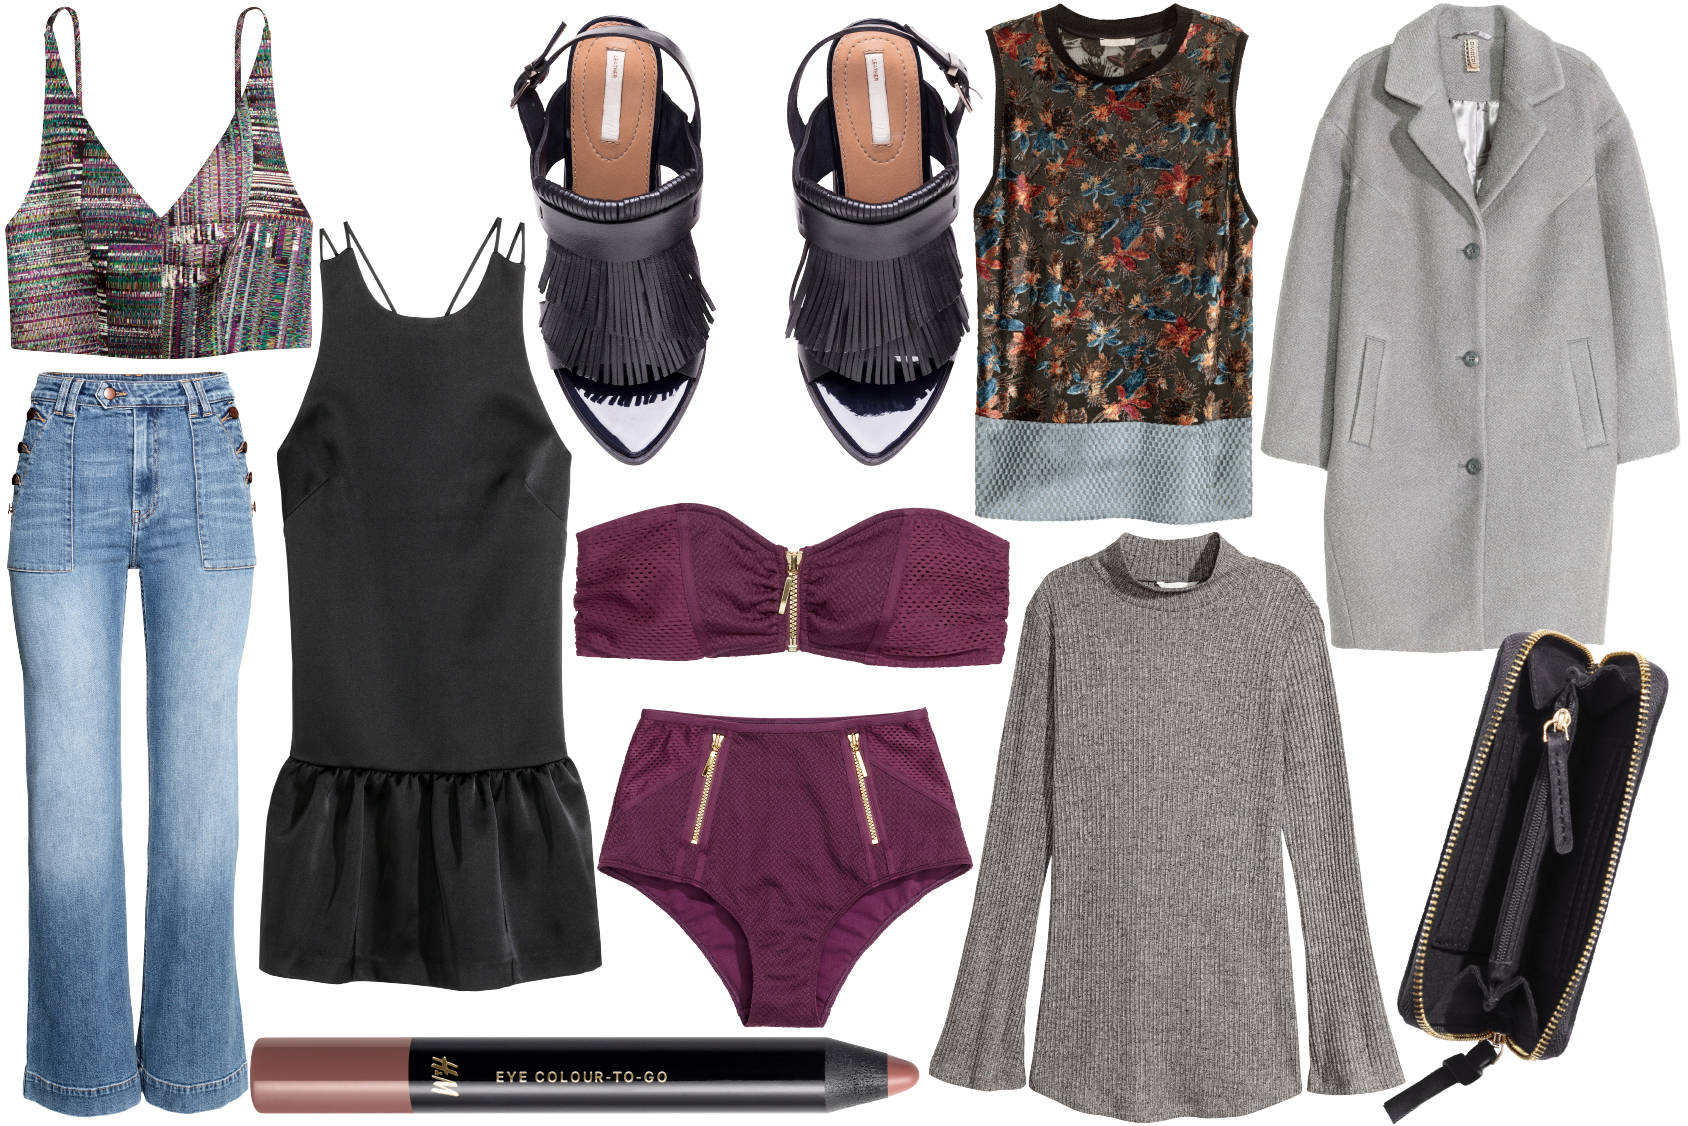 THIS WEEK'S FASHION FINDS, WEEK 51.